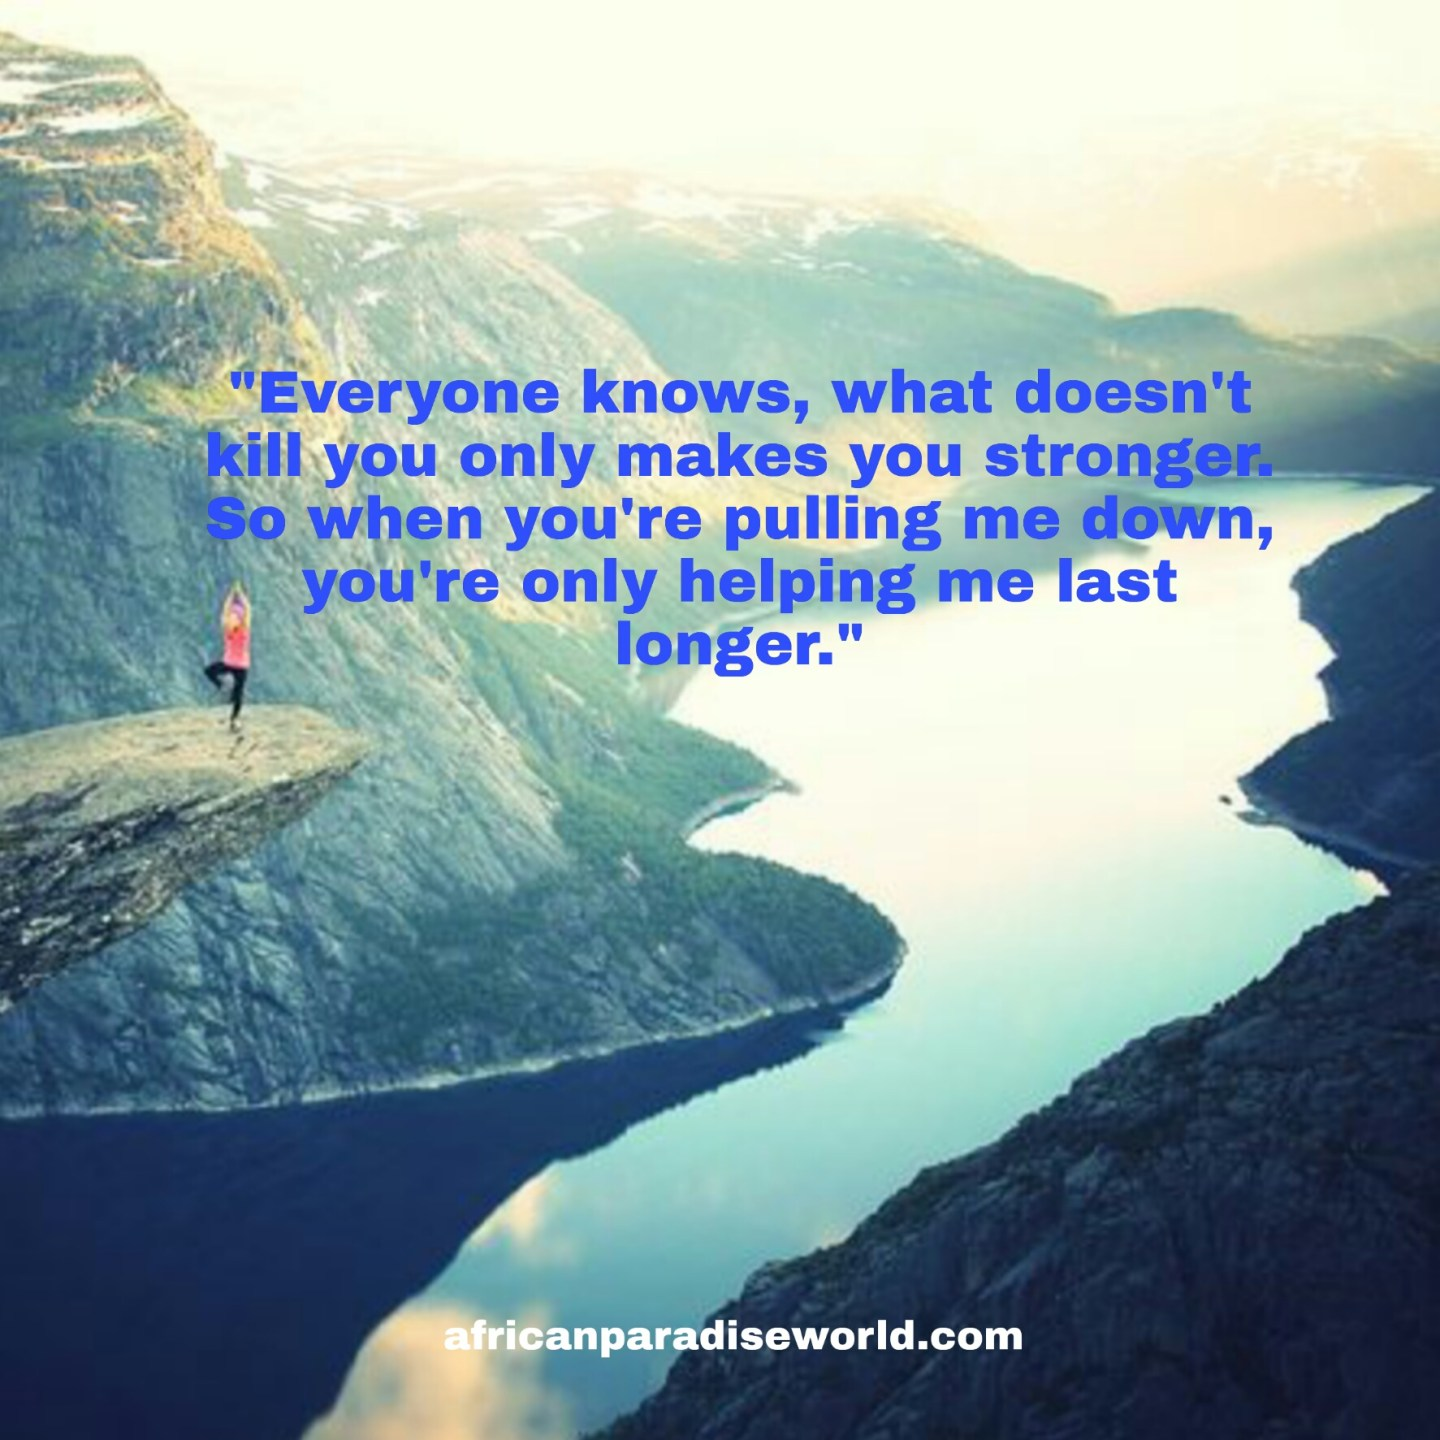 Overcoming adversity quotes by being stronger